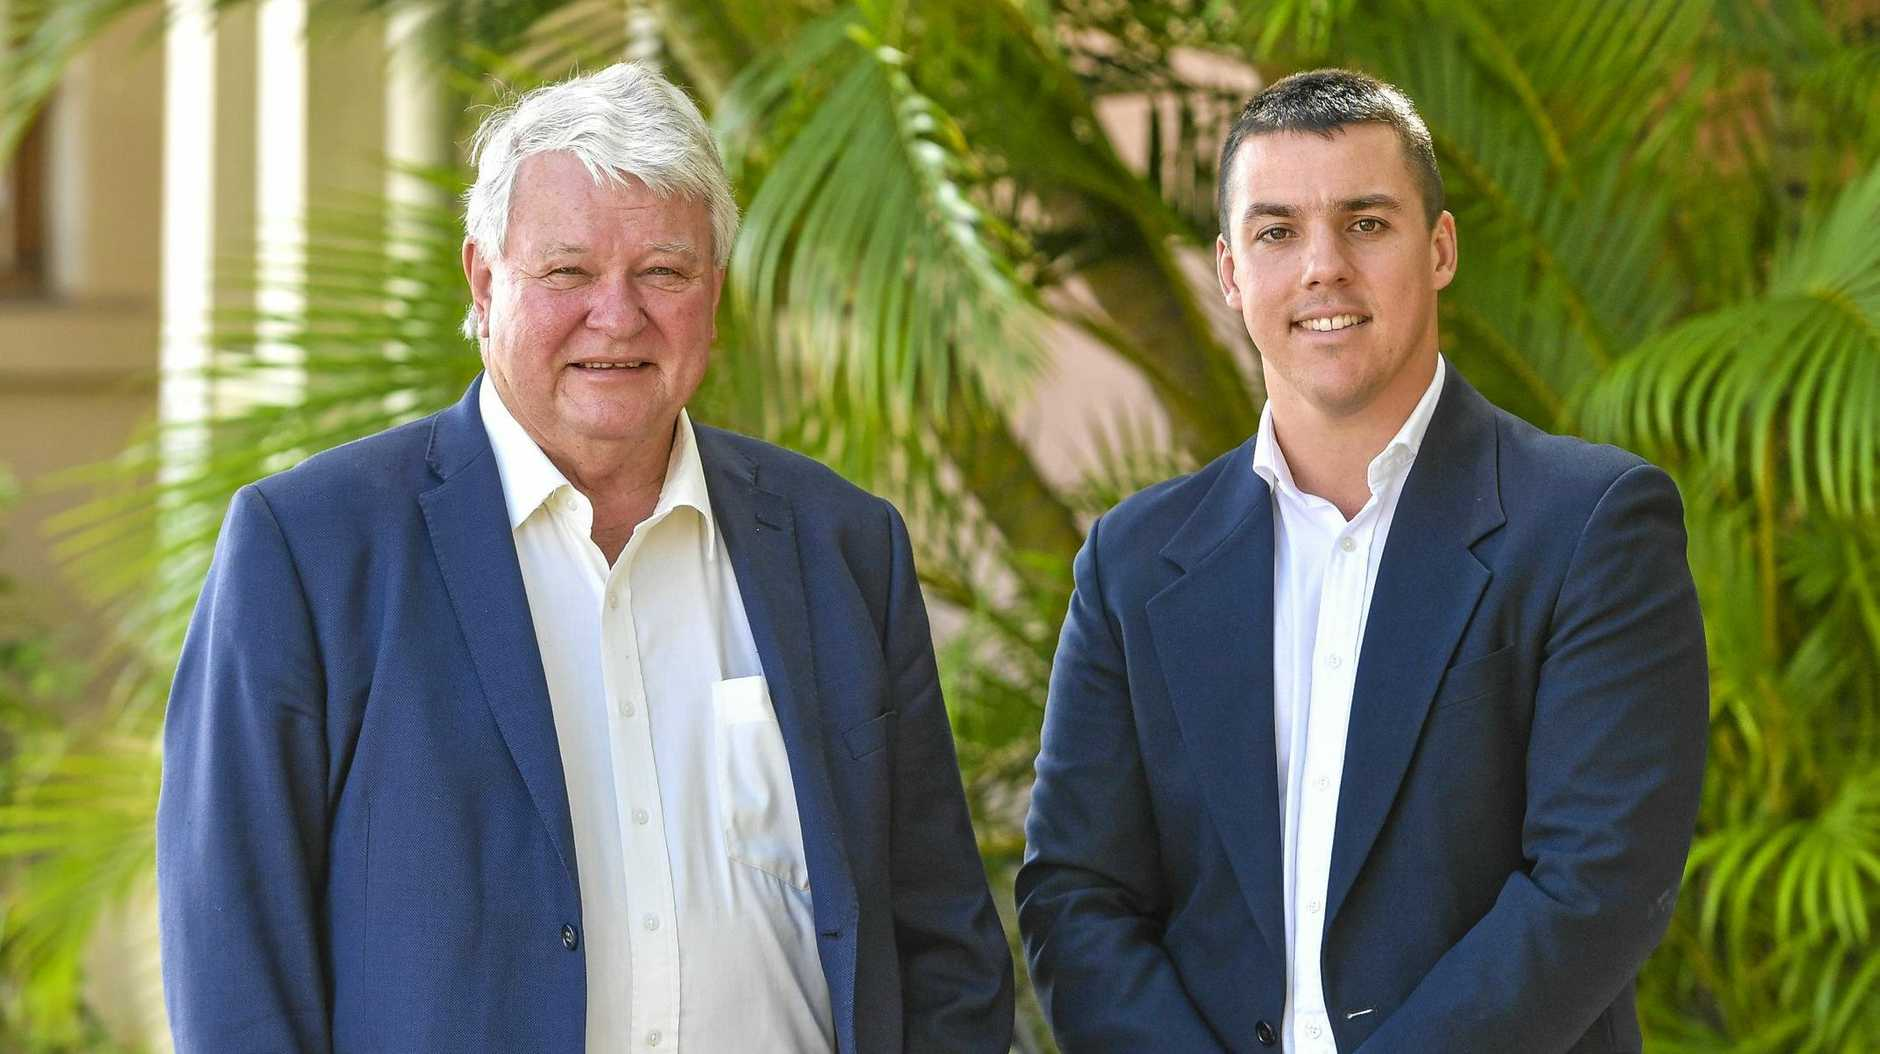 OVERHAUL NEEDED: LNP Member for Flynn Ken O'Dowd and Labor candidate for Flynn Zac Beers continue to lock horns over the issue of wage casualisation.